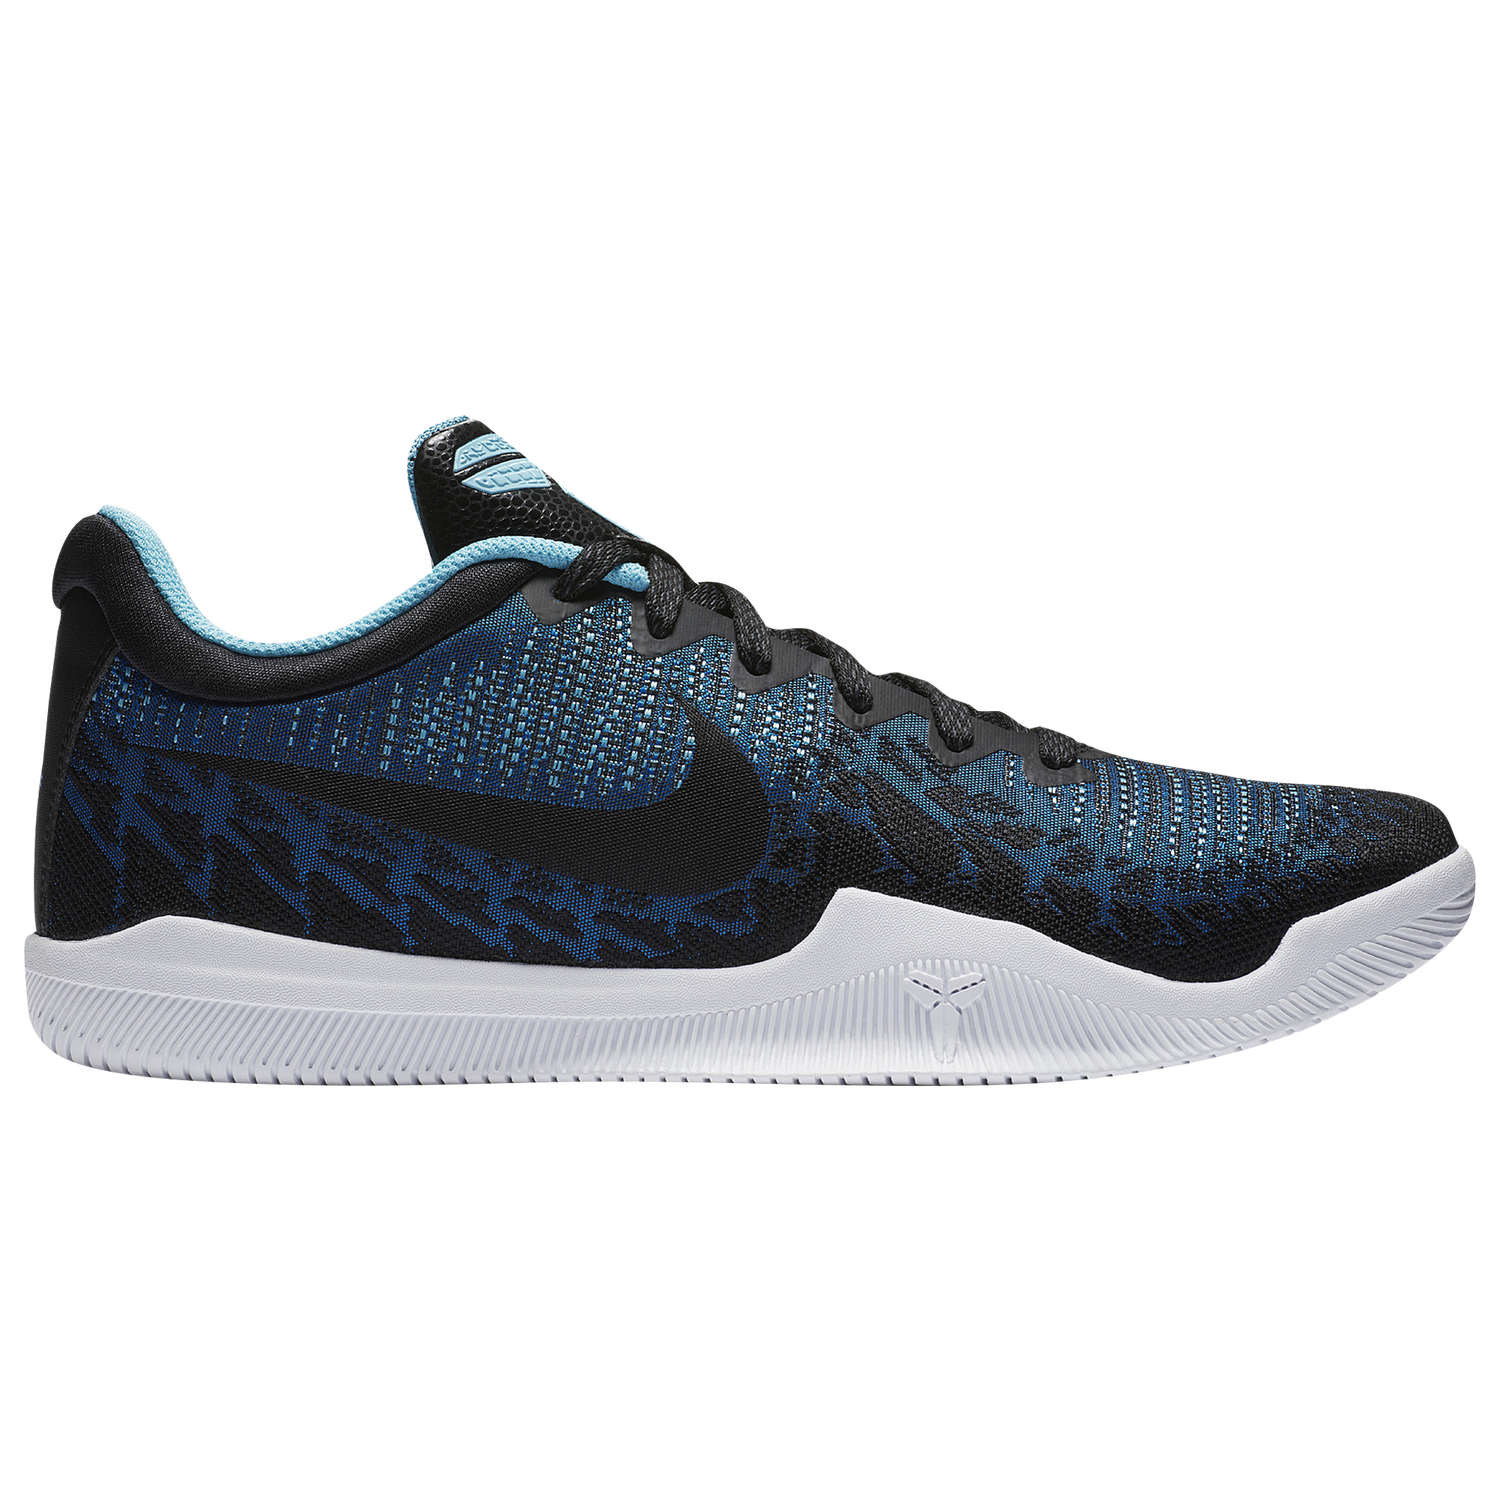 Clearance Best Prices Best Seller Online MAMBA RAGE - Basketball shoes - blue/black/blue gale Sale New Online Sale VQ39is7